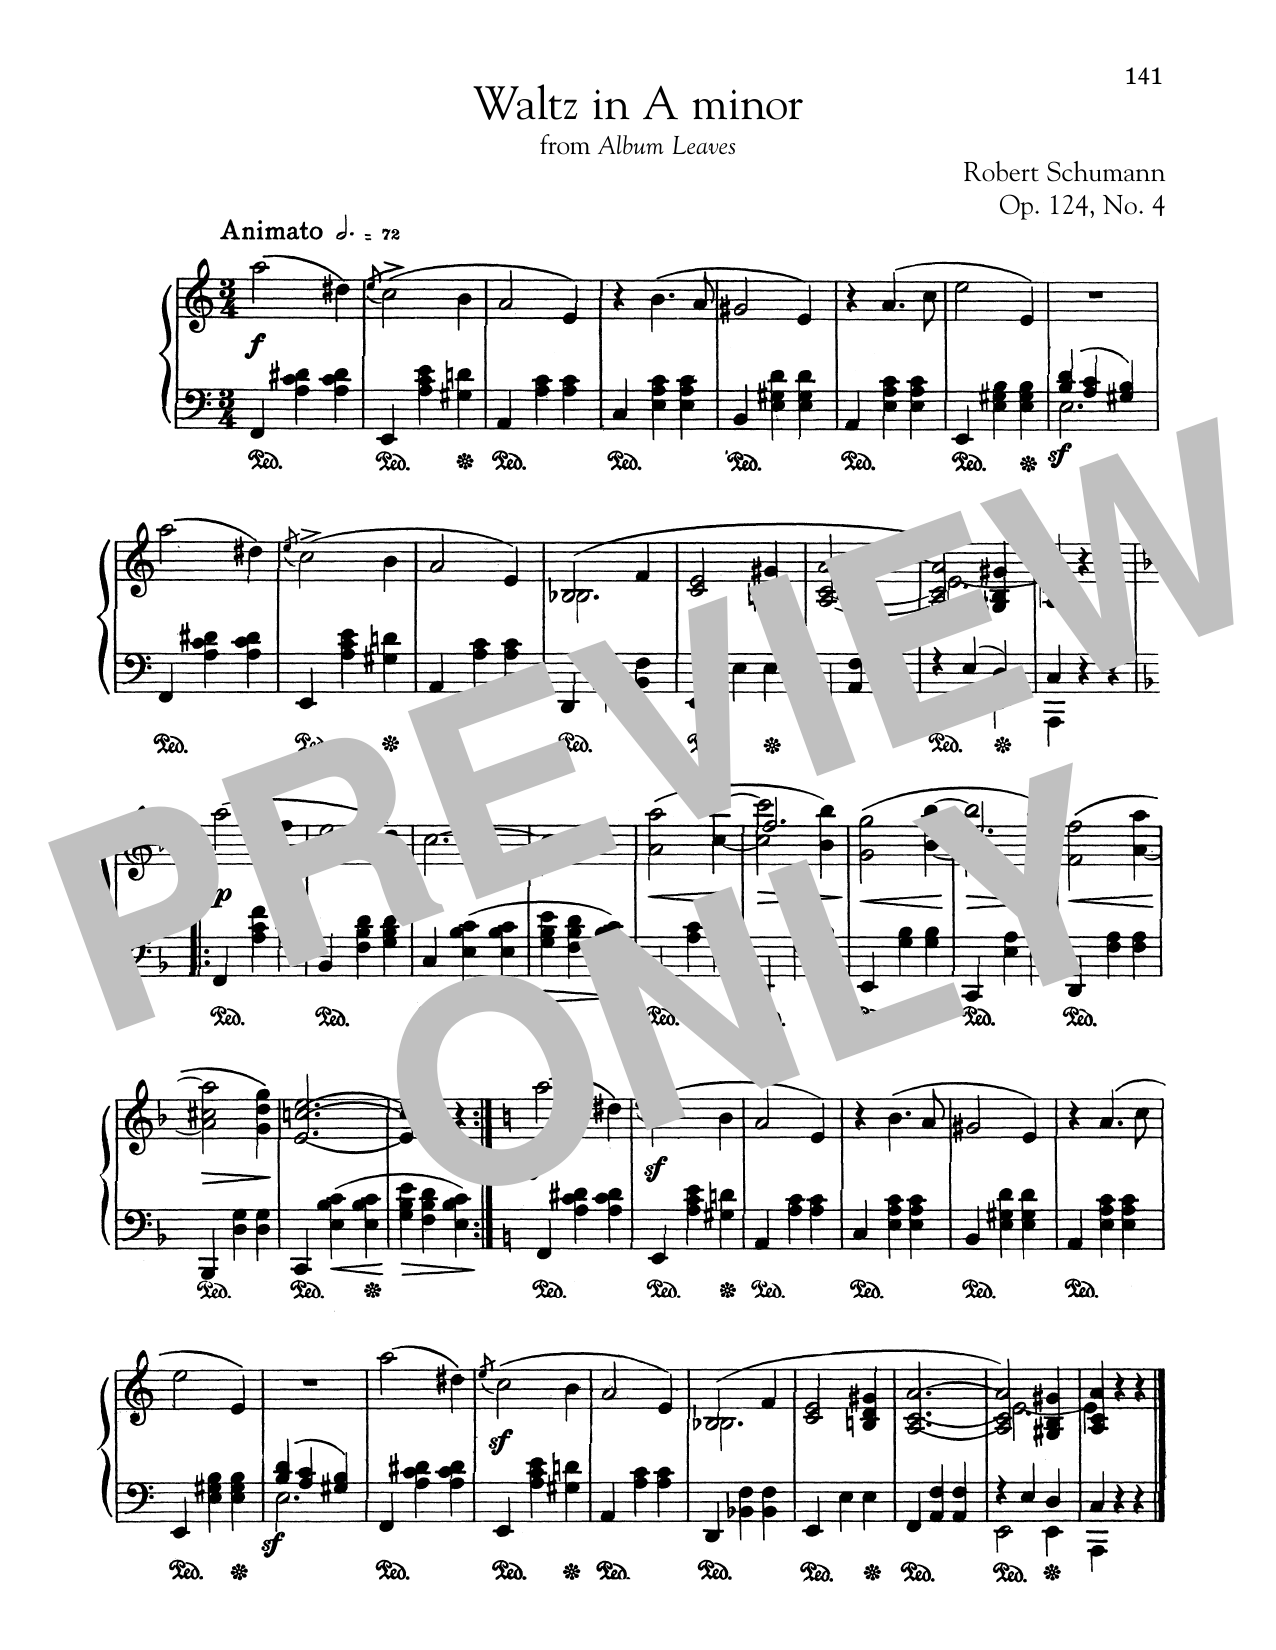 Robert Schumann Waltz In A Minor sheet music preview music notes and score for Piano including 1 page(s)